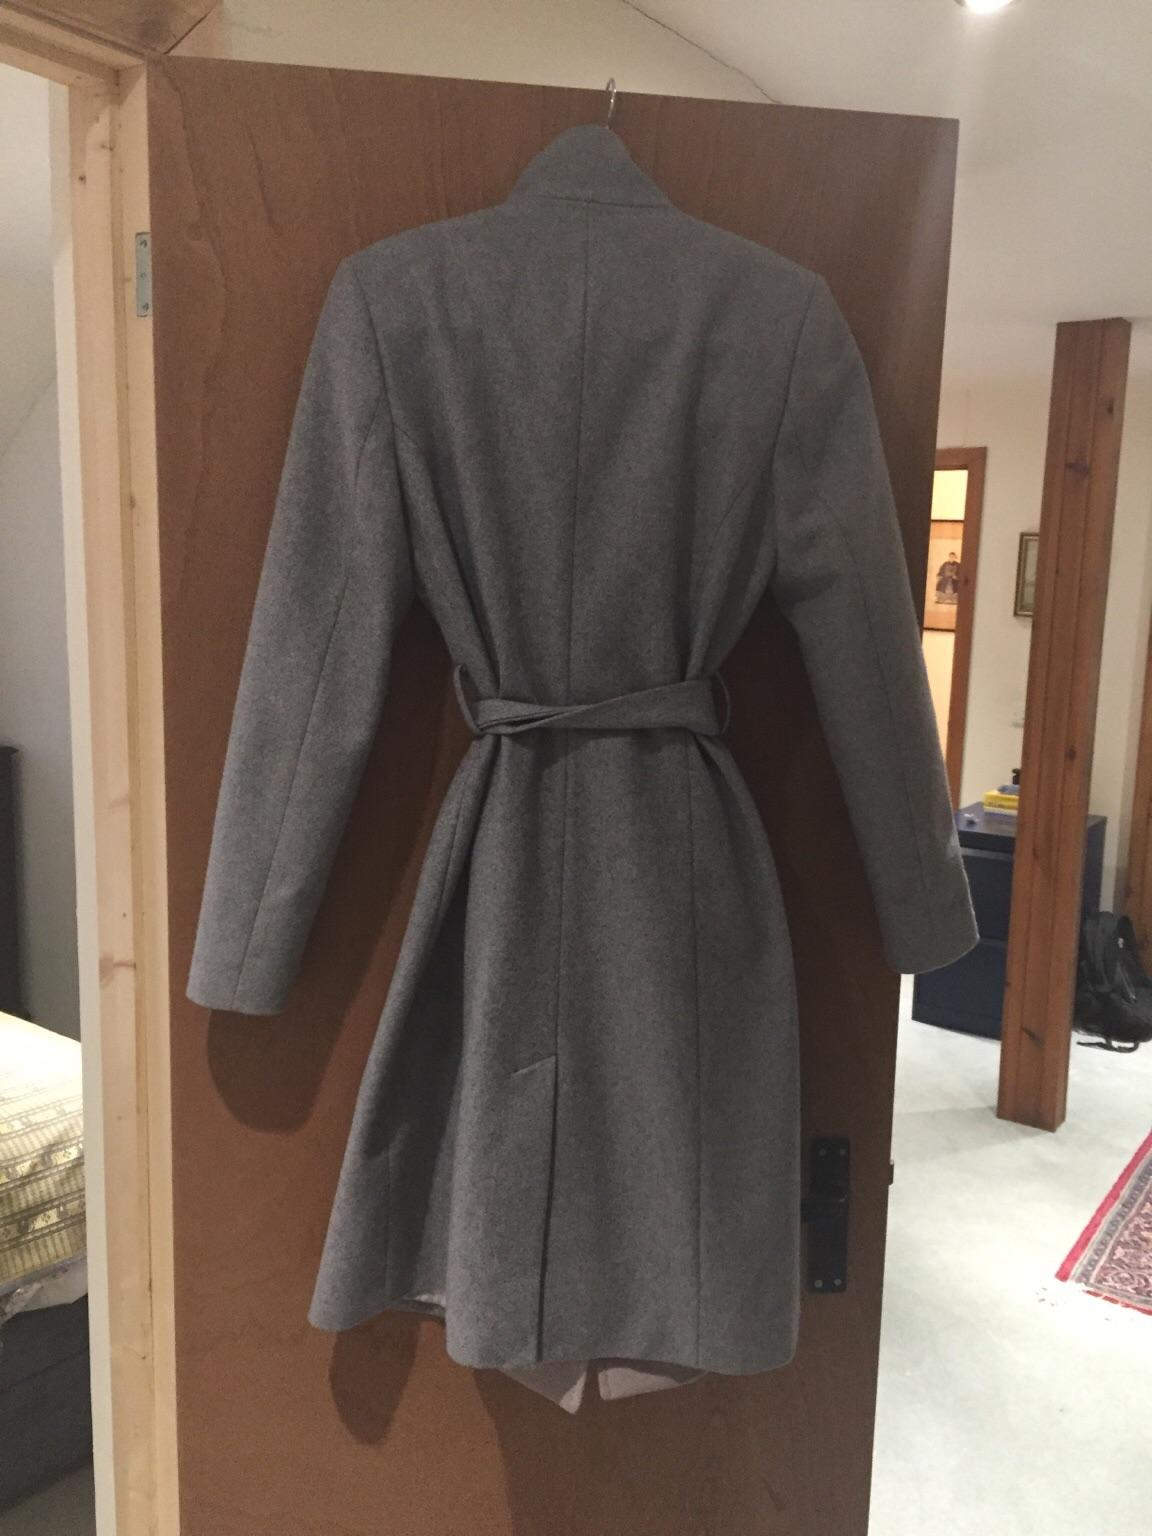 5c48d2816f23 Ted Baker 'Khera Wool-cashmere wrap coat' in EH15 Willowbrae for £150.00 -  Shpock